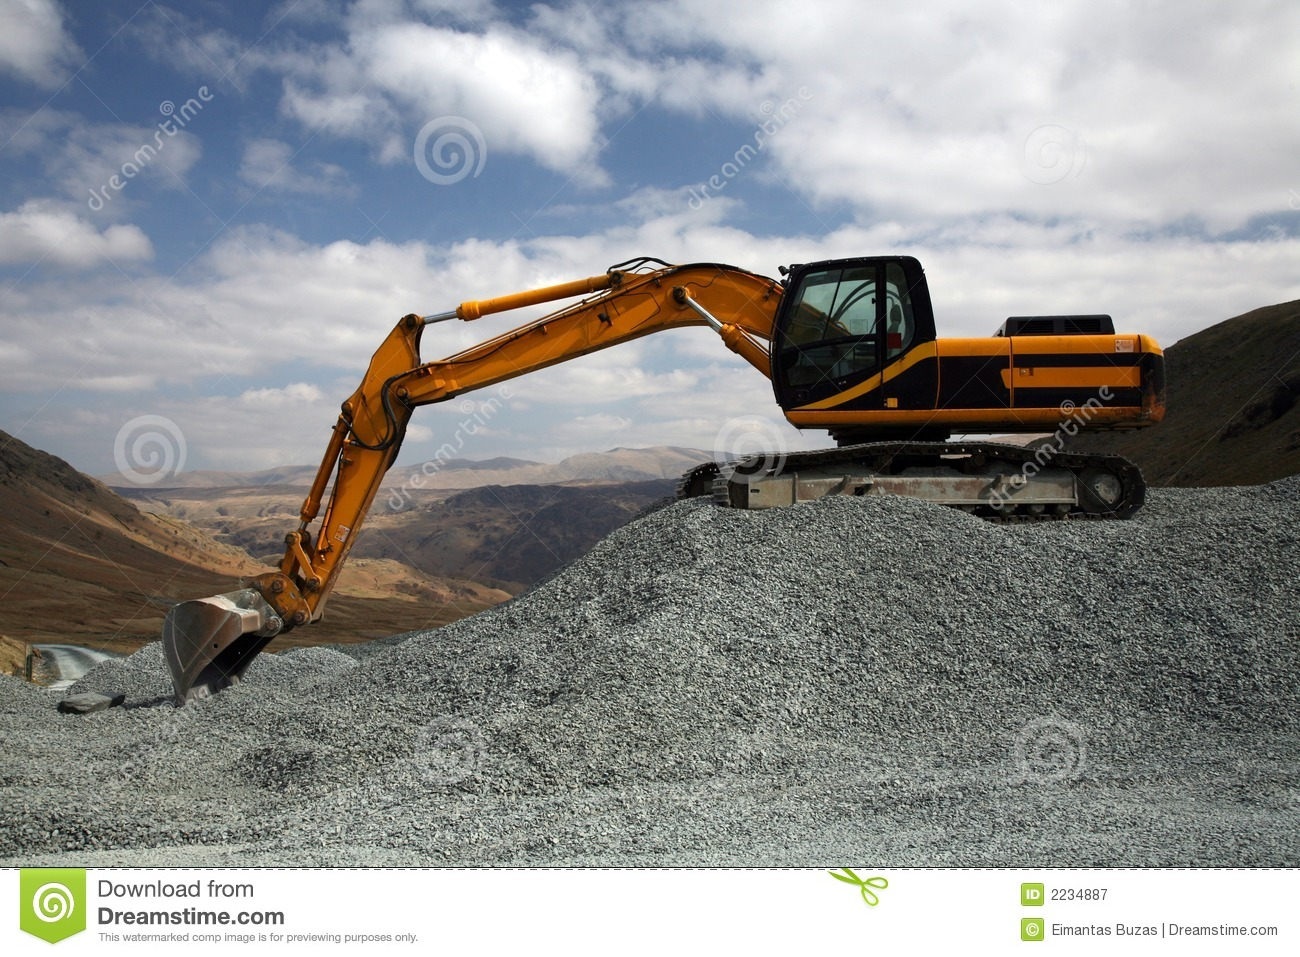 Royalty Free Stock Photography: Mining Site: www.dreamstime.com/royalty-free-stock-photography-mining-site...